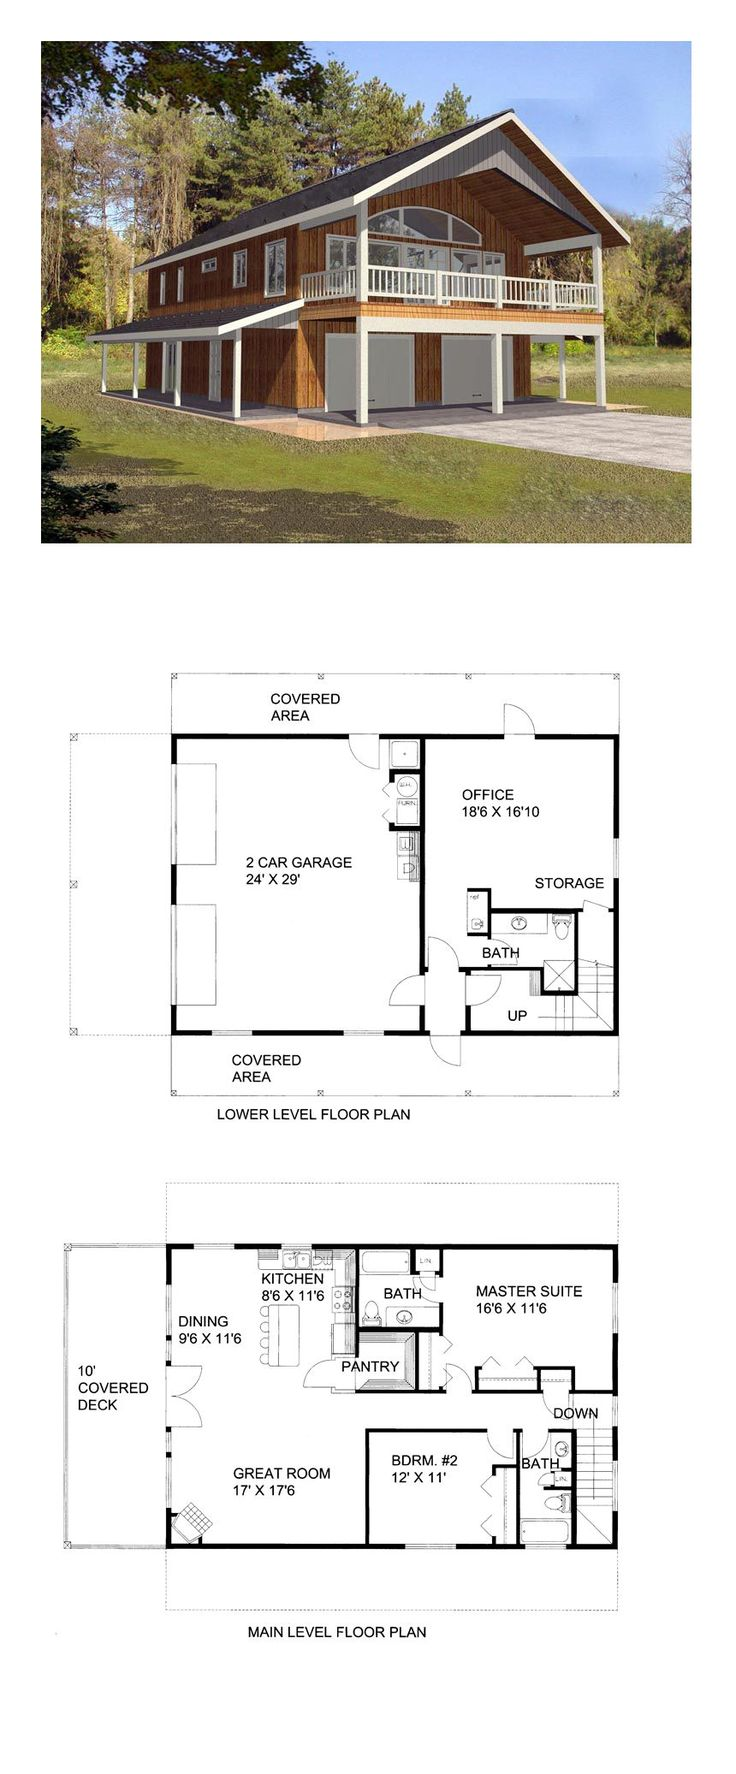 25 best ideas about garage apartment plans on pinterest garage loft apartment garage plans - Garage apartment floor plans ...